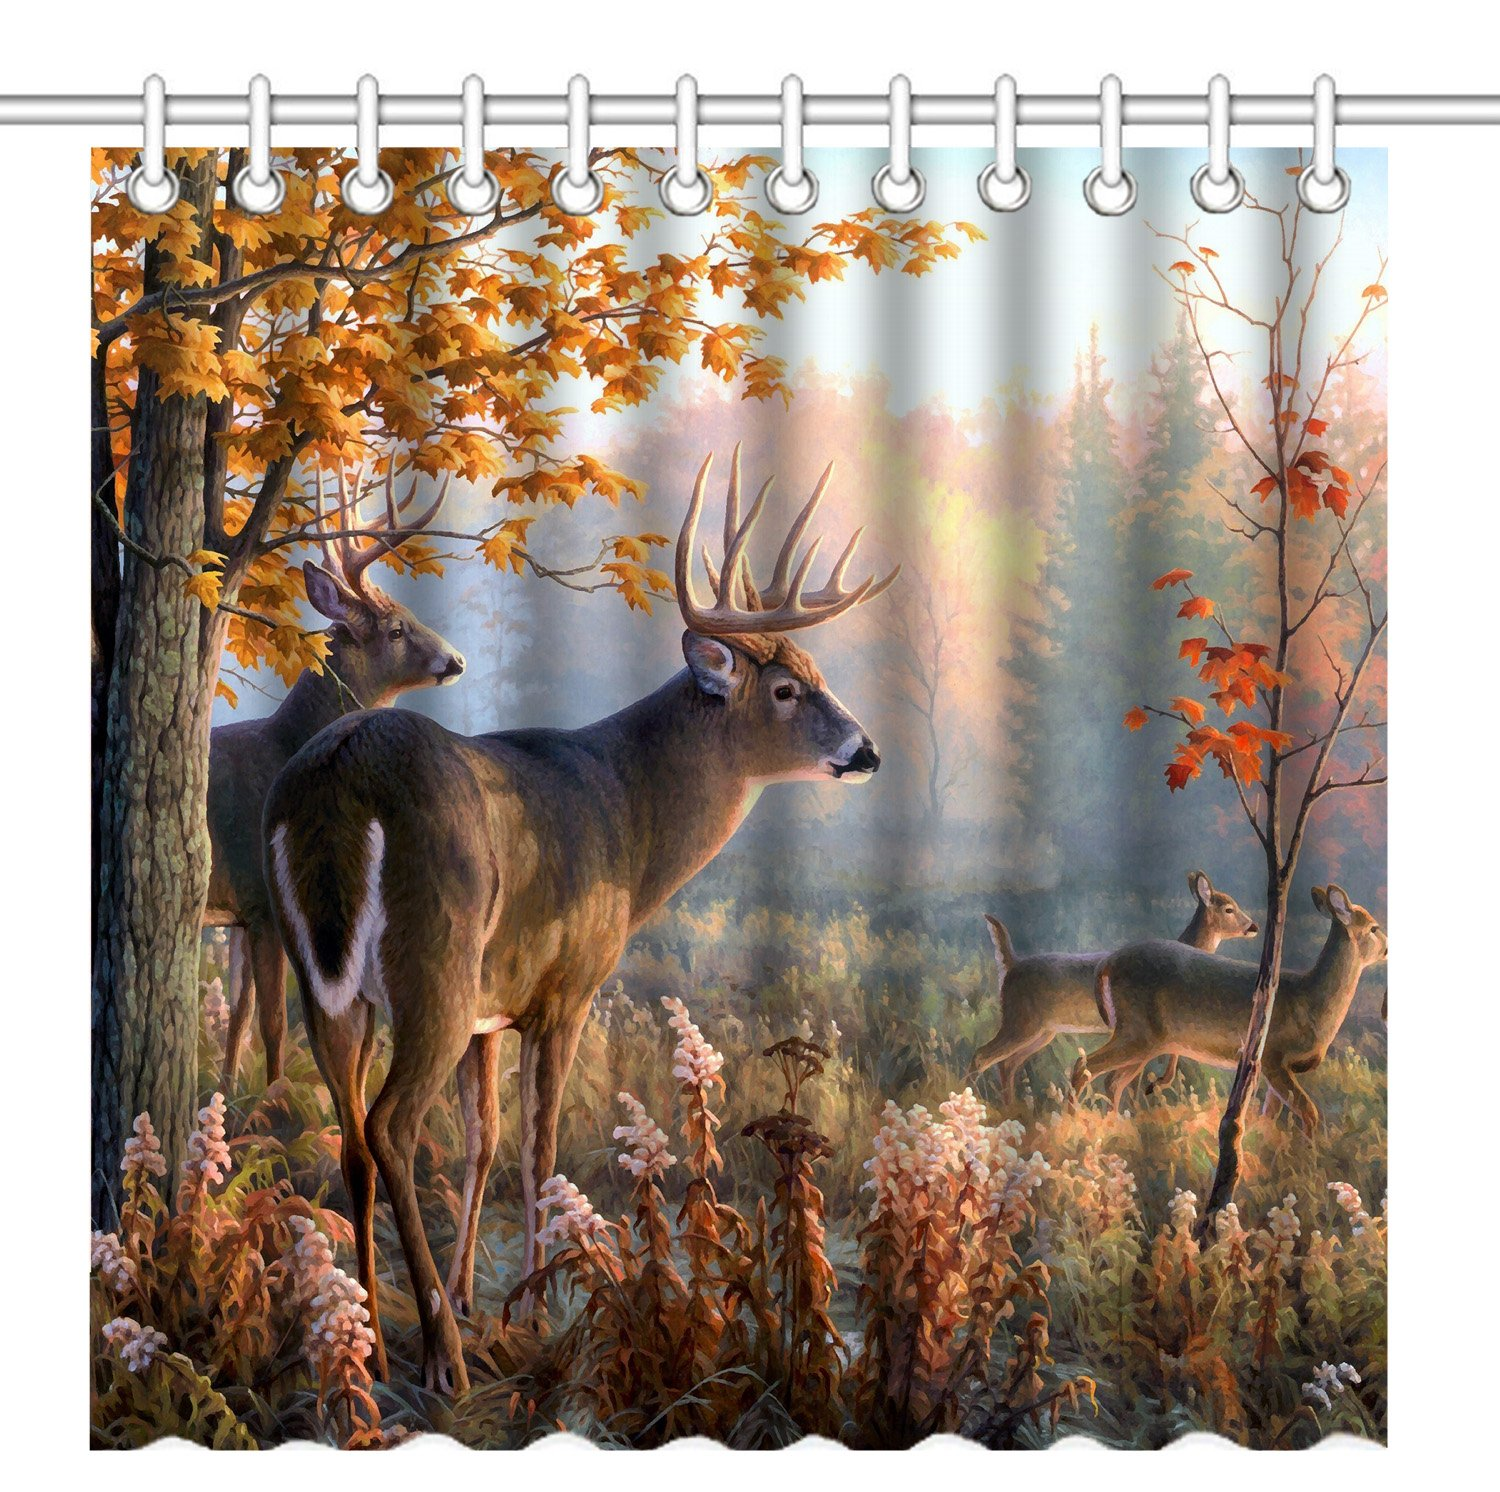 Details about Shower Curtain Deer Rustic Wildlife Bathroom Decor Nature  Cabin Lodge Gift New